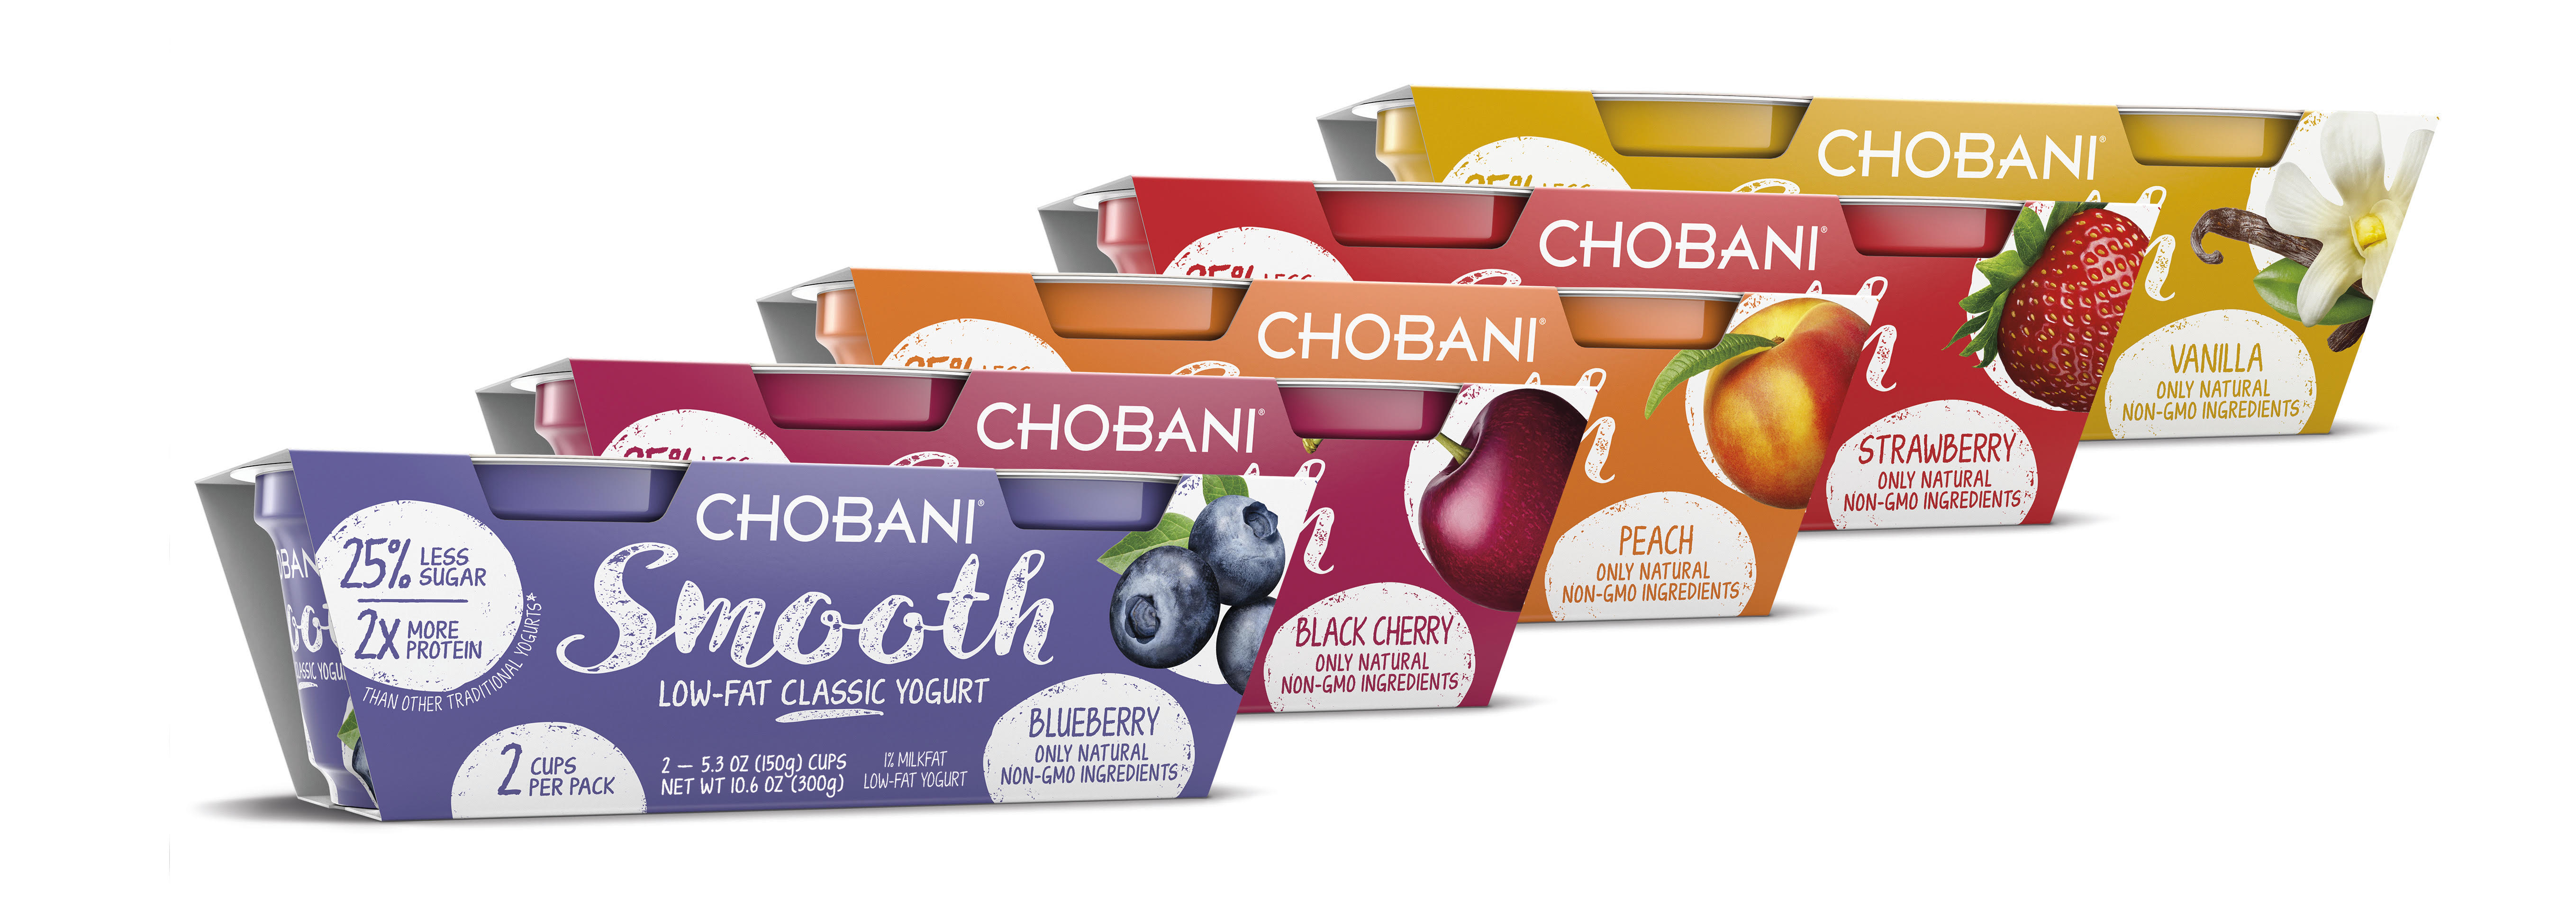 Greek yogurt maker Chobani is launching a traditional style for the first time in 2017.